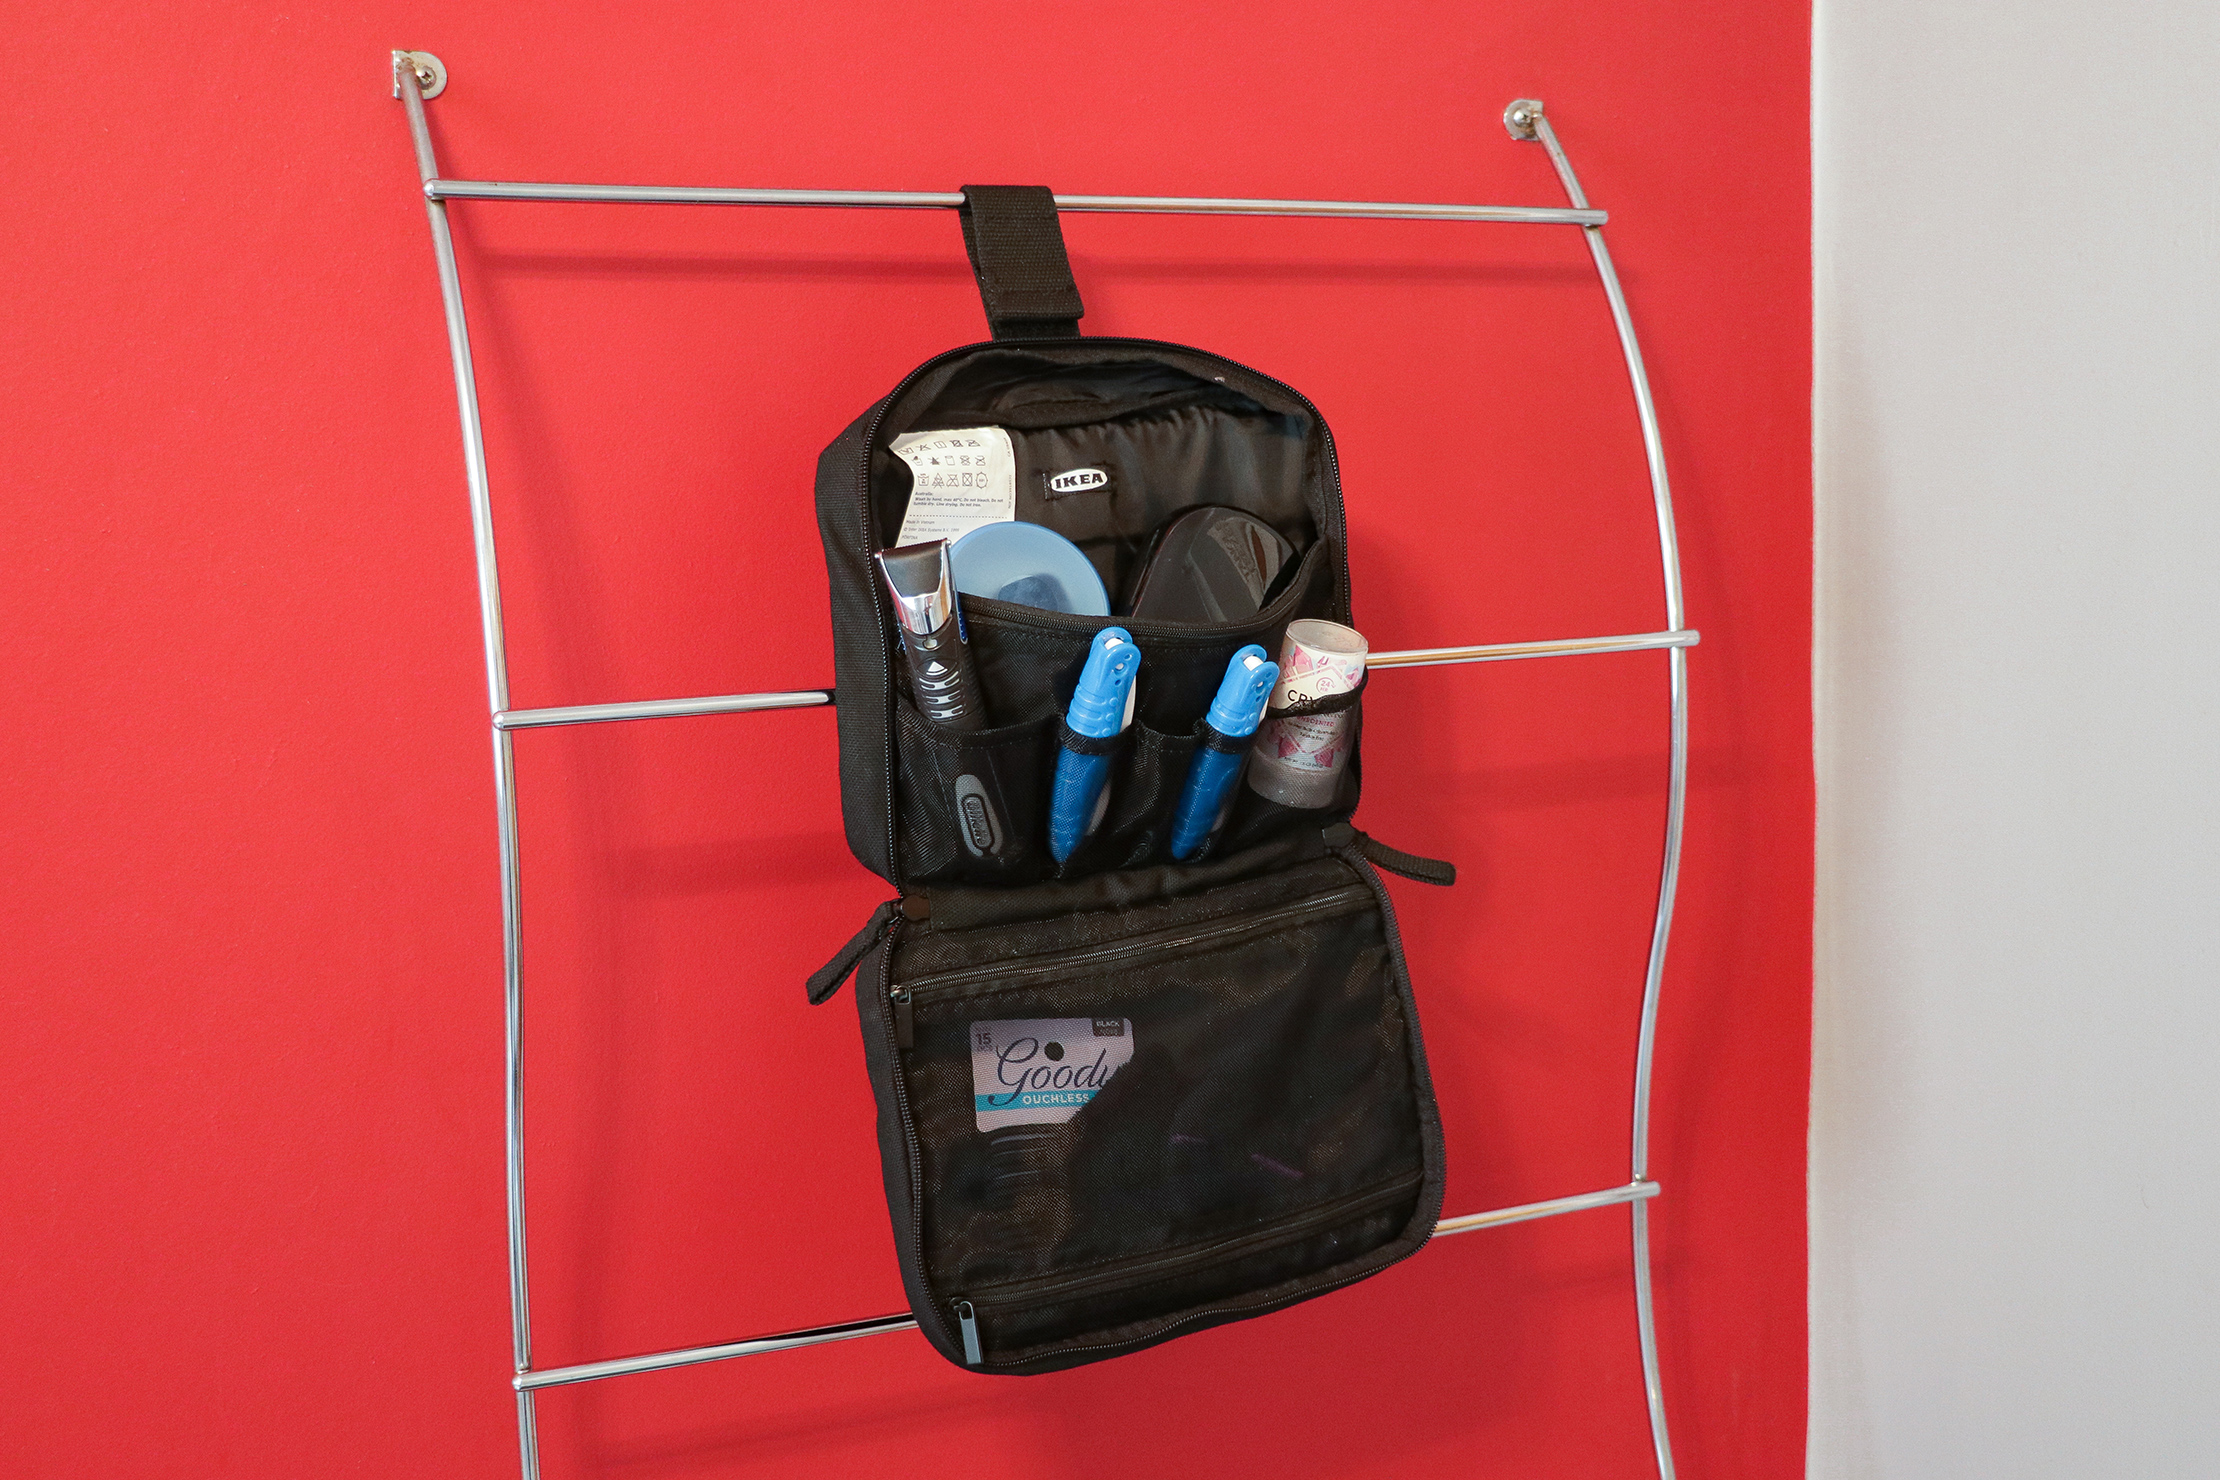 IKEA FORFINA Toiletry Bag Hanging Up